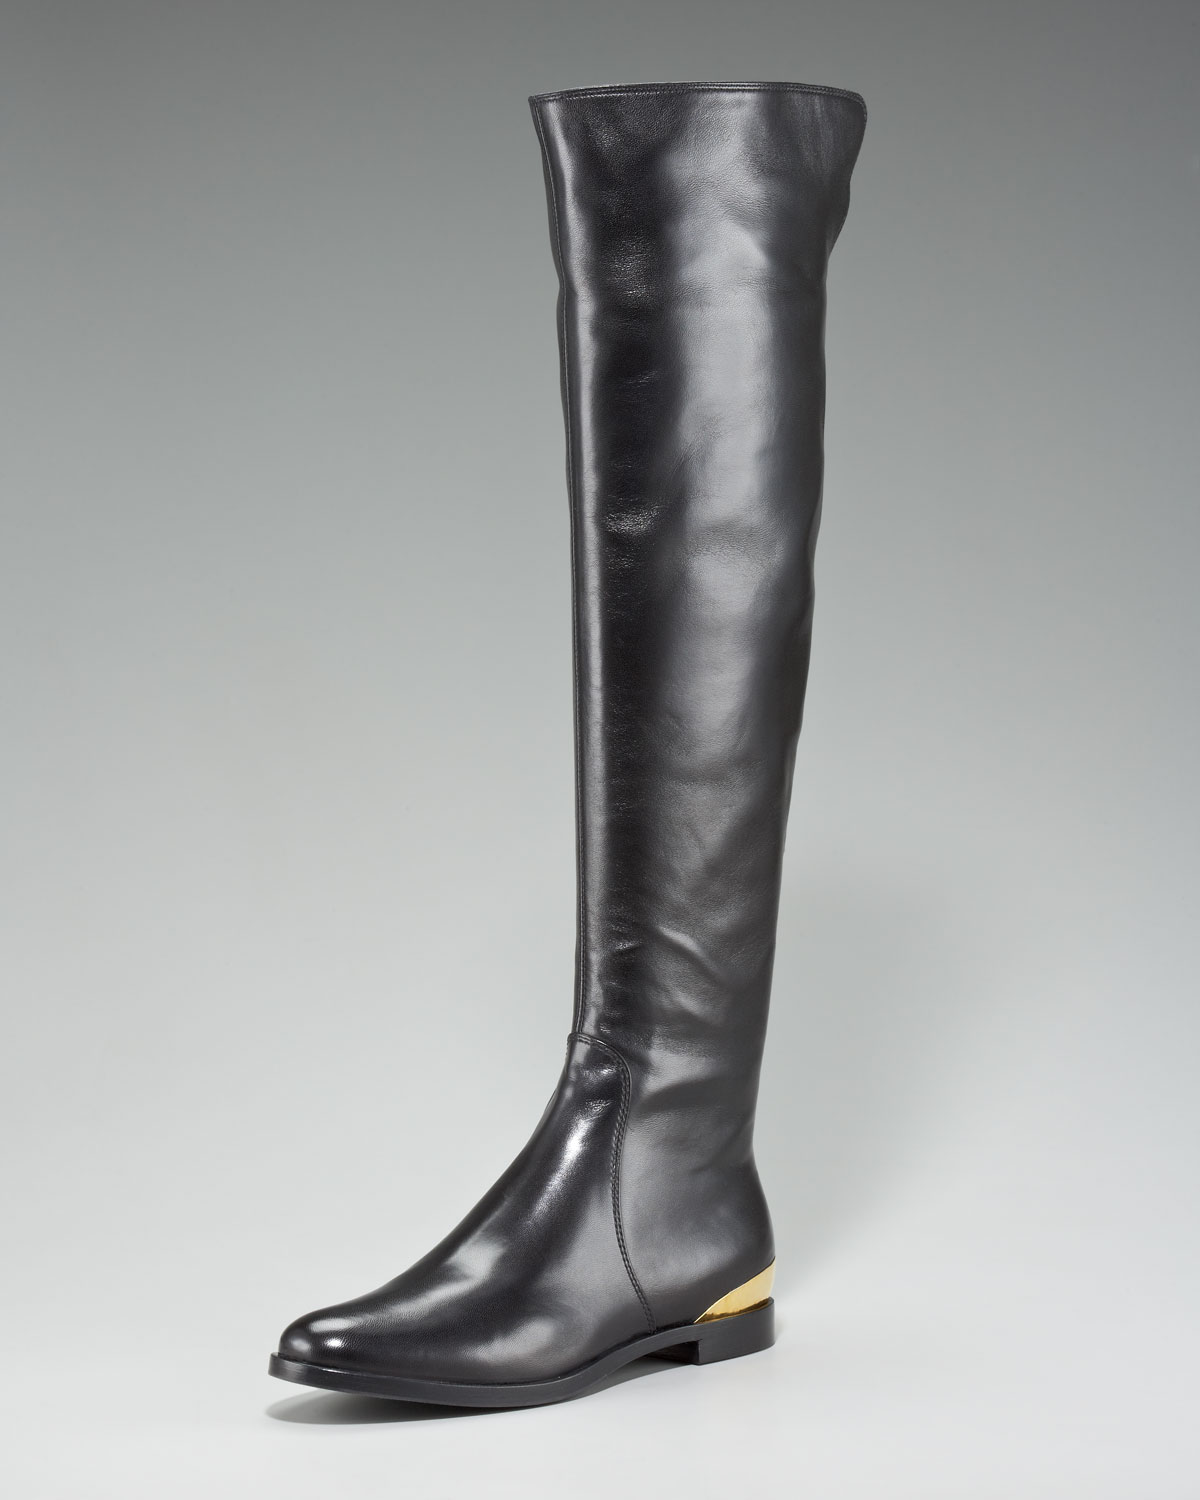 Sergio rossi Over-The-Knee Heel-Plate Riding Boot in Black | Lyst